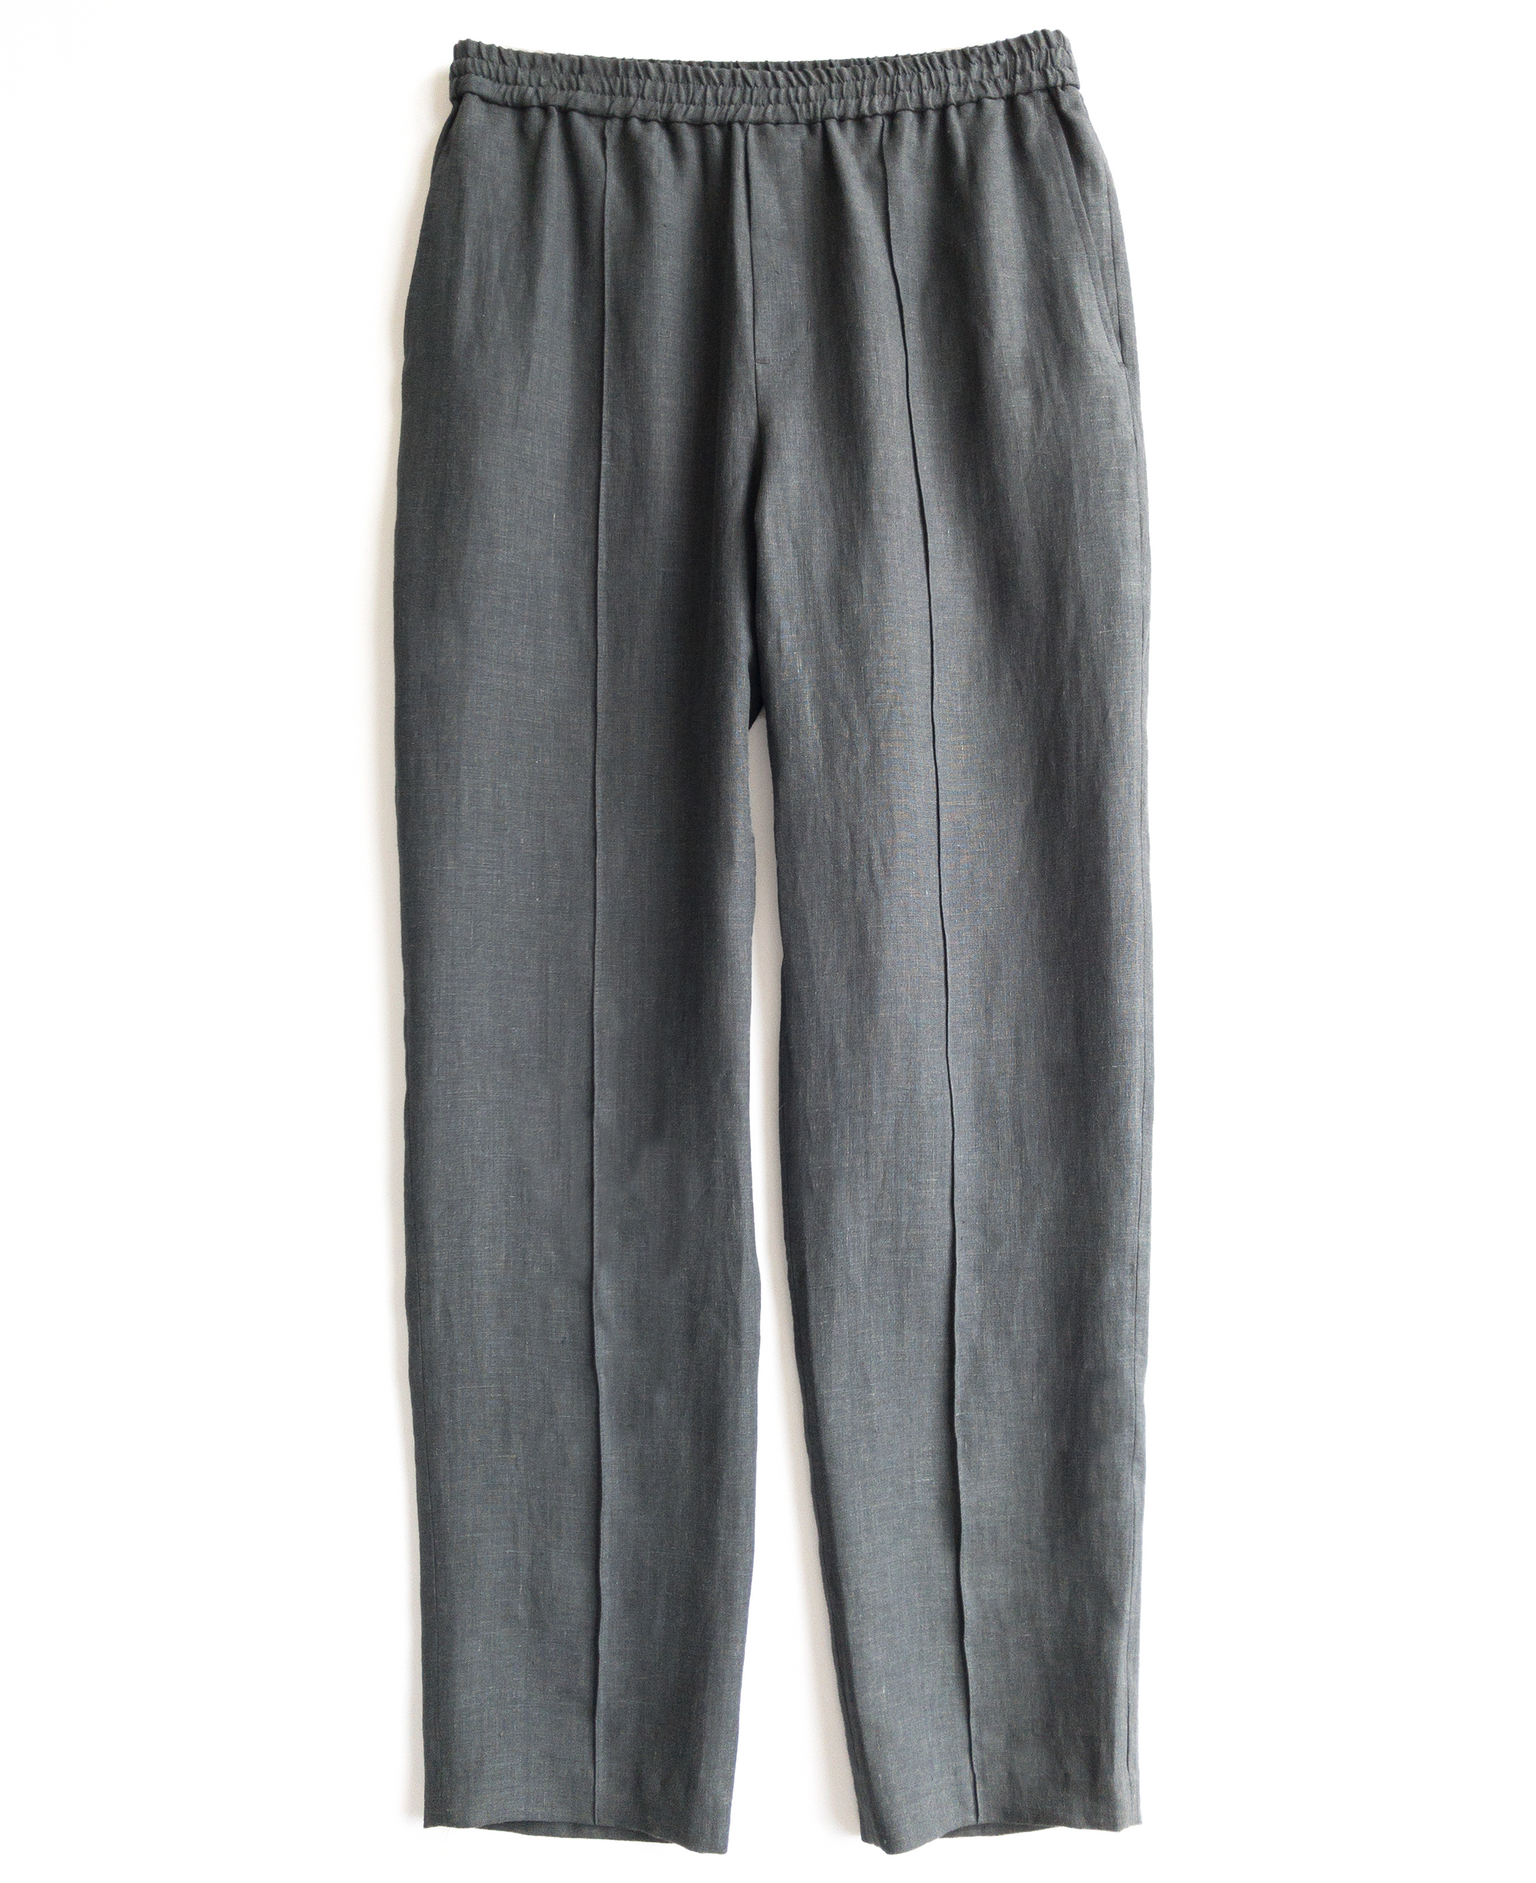 drawstring trouser / anthracite gray